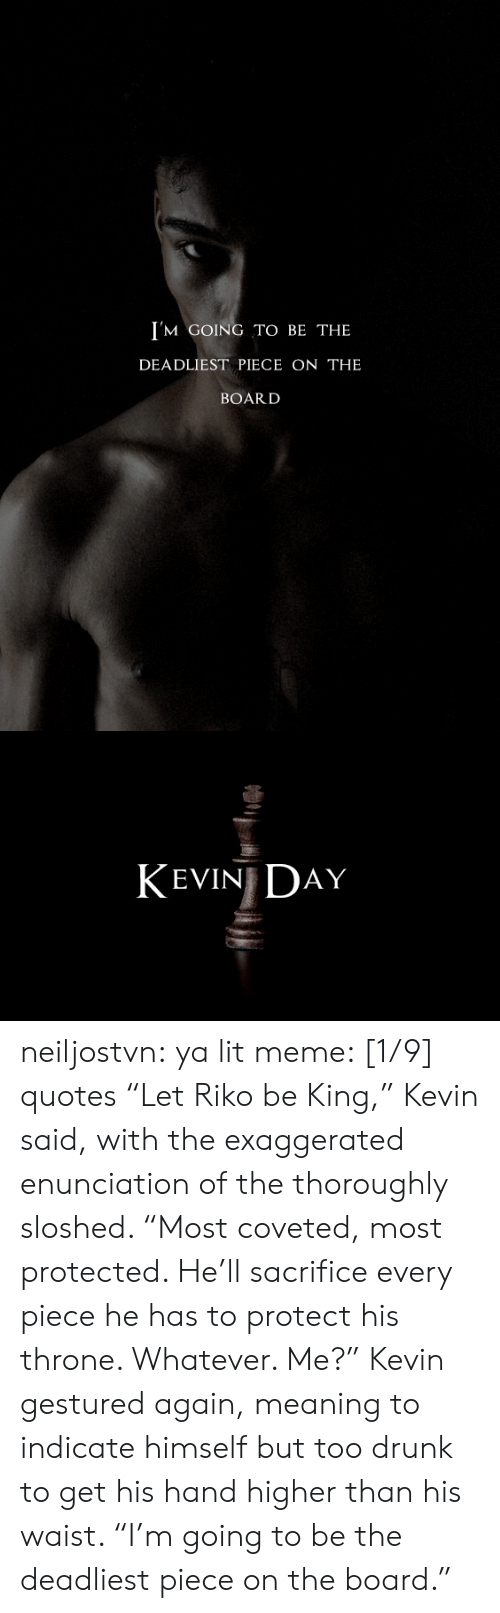 "Drunk, Lit, and Meme: I'M GOING TO BE THE  DEADLIEST PIECE ON THE  BOARD   KEVIN DAY neiljostvn:  ya lit meme: [1/9] quotes   ""Let Riko be King,"" Kevin said, with the exaggerated enunciation of the thoroughly sloshed. ""Most coveted, most protected. He'll sacrifice every piece he has to protect his throne. Whatever. Me?"" Kevin gestured again, meaning to indicate himself but too drunk to get his hand higher than his waist. ""I'm going to be the deadliest piece on the board."""